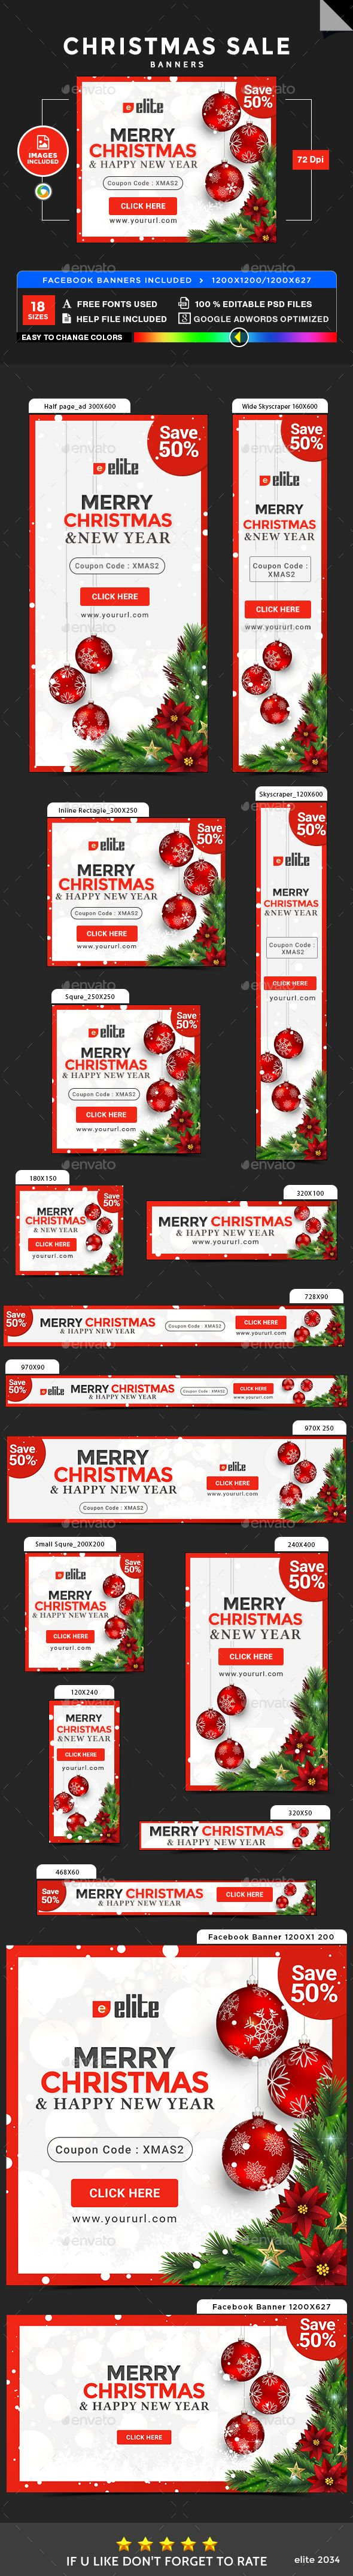 Christmas Banners - Image Included - Template PSD #ads #xmas #web